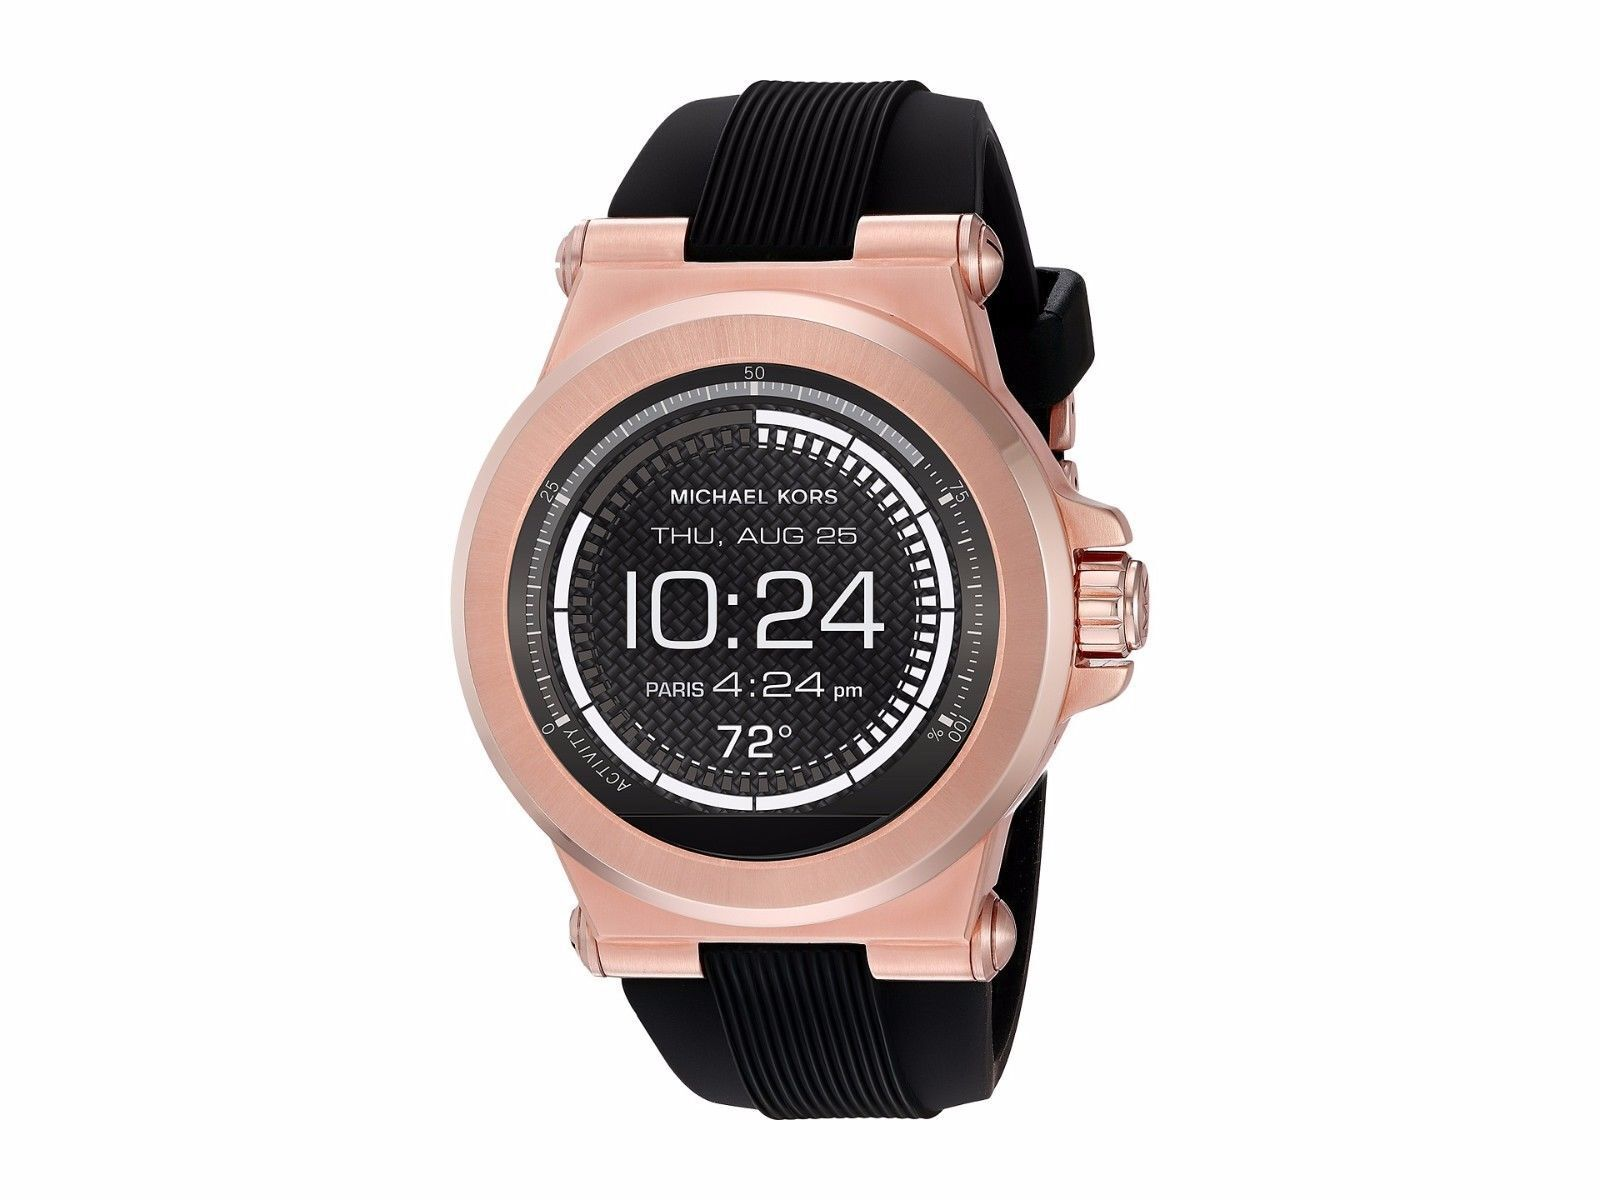 156589673cb2 Michael Kors Access Touchscreen Rose Dylan Smartwatch MKT5010 Silicone Band  for sale online